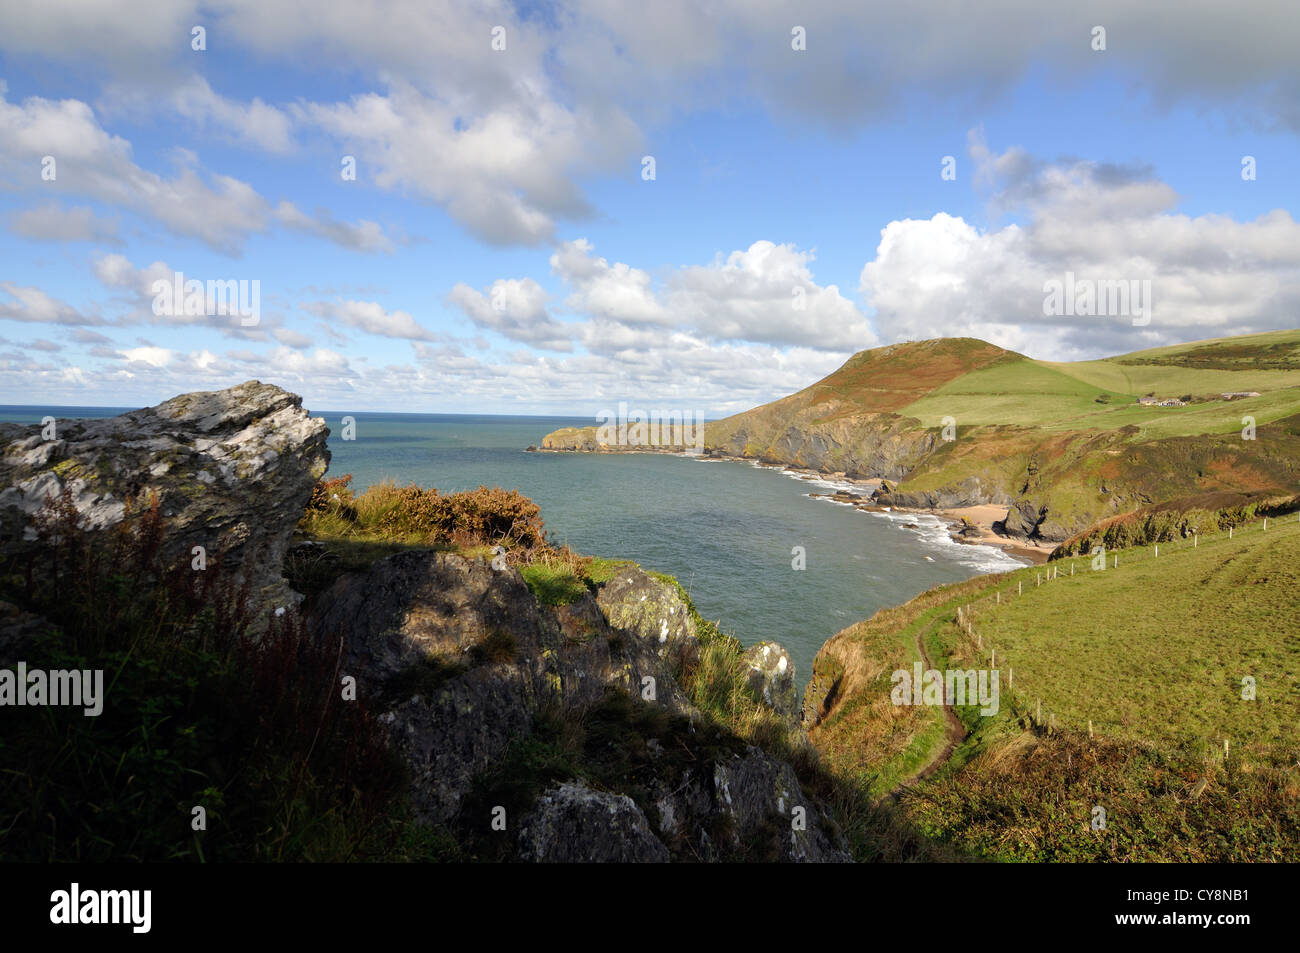 View of Llangrannog and Cardigan Bay, Ceredigion, Wales, Great Britain - Stock Image